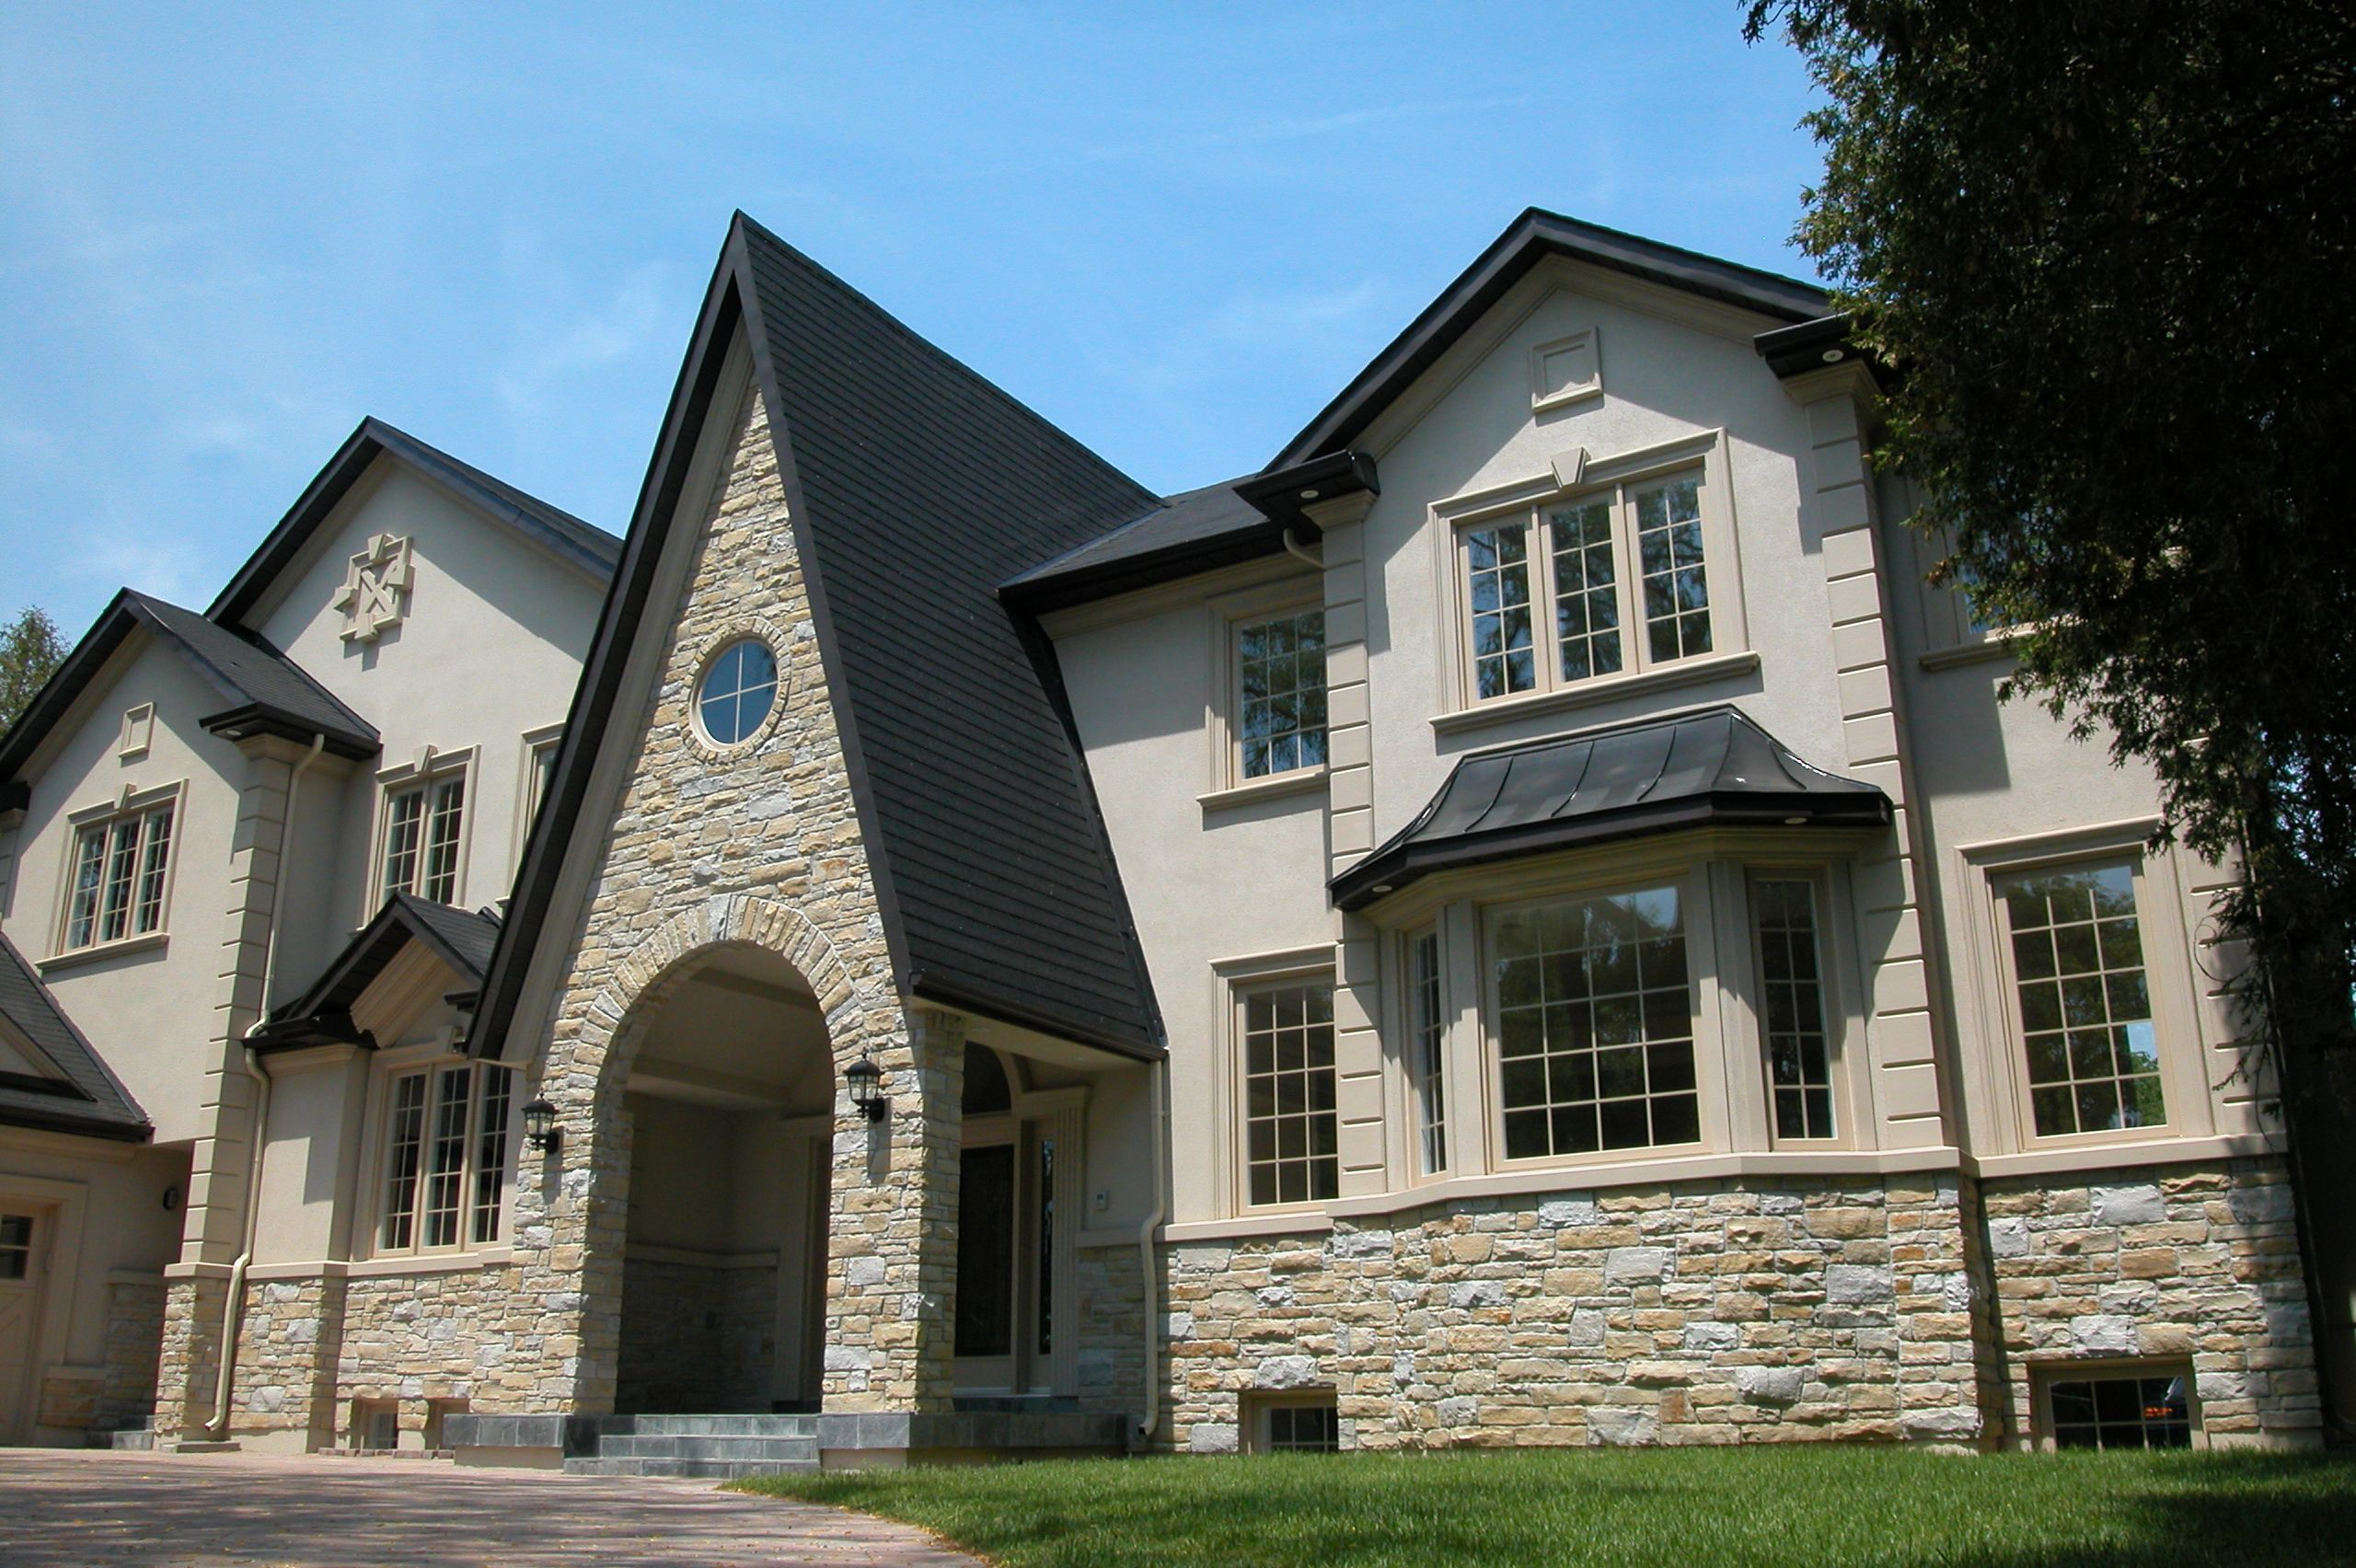 houses with stone exterior | ... of stone veneer to choose from for your  stone home exterior project | HOUSE WITH STONE EXTERIOR | Pinterest | Stone  veneer, ...